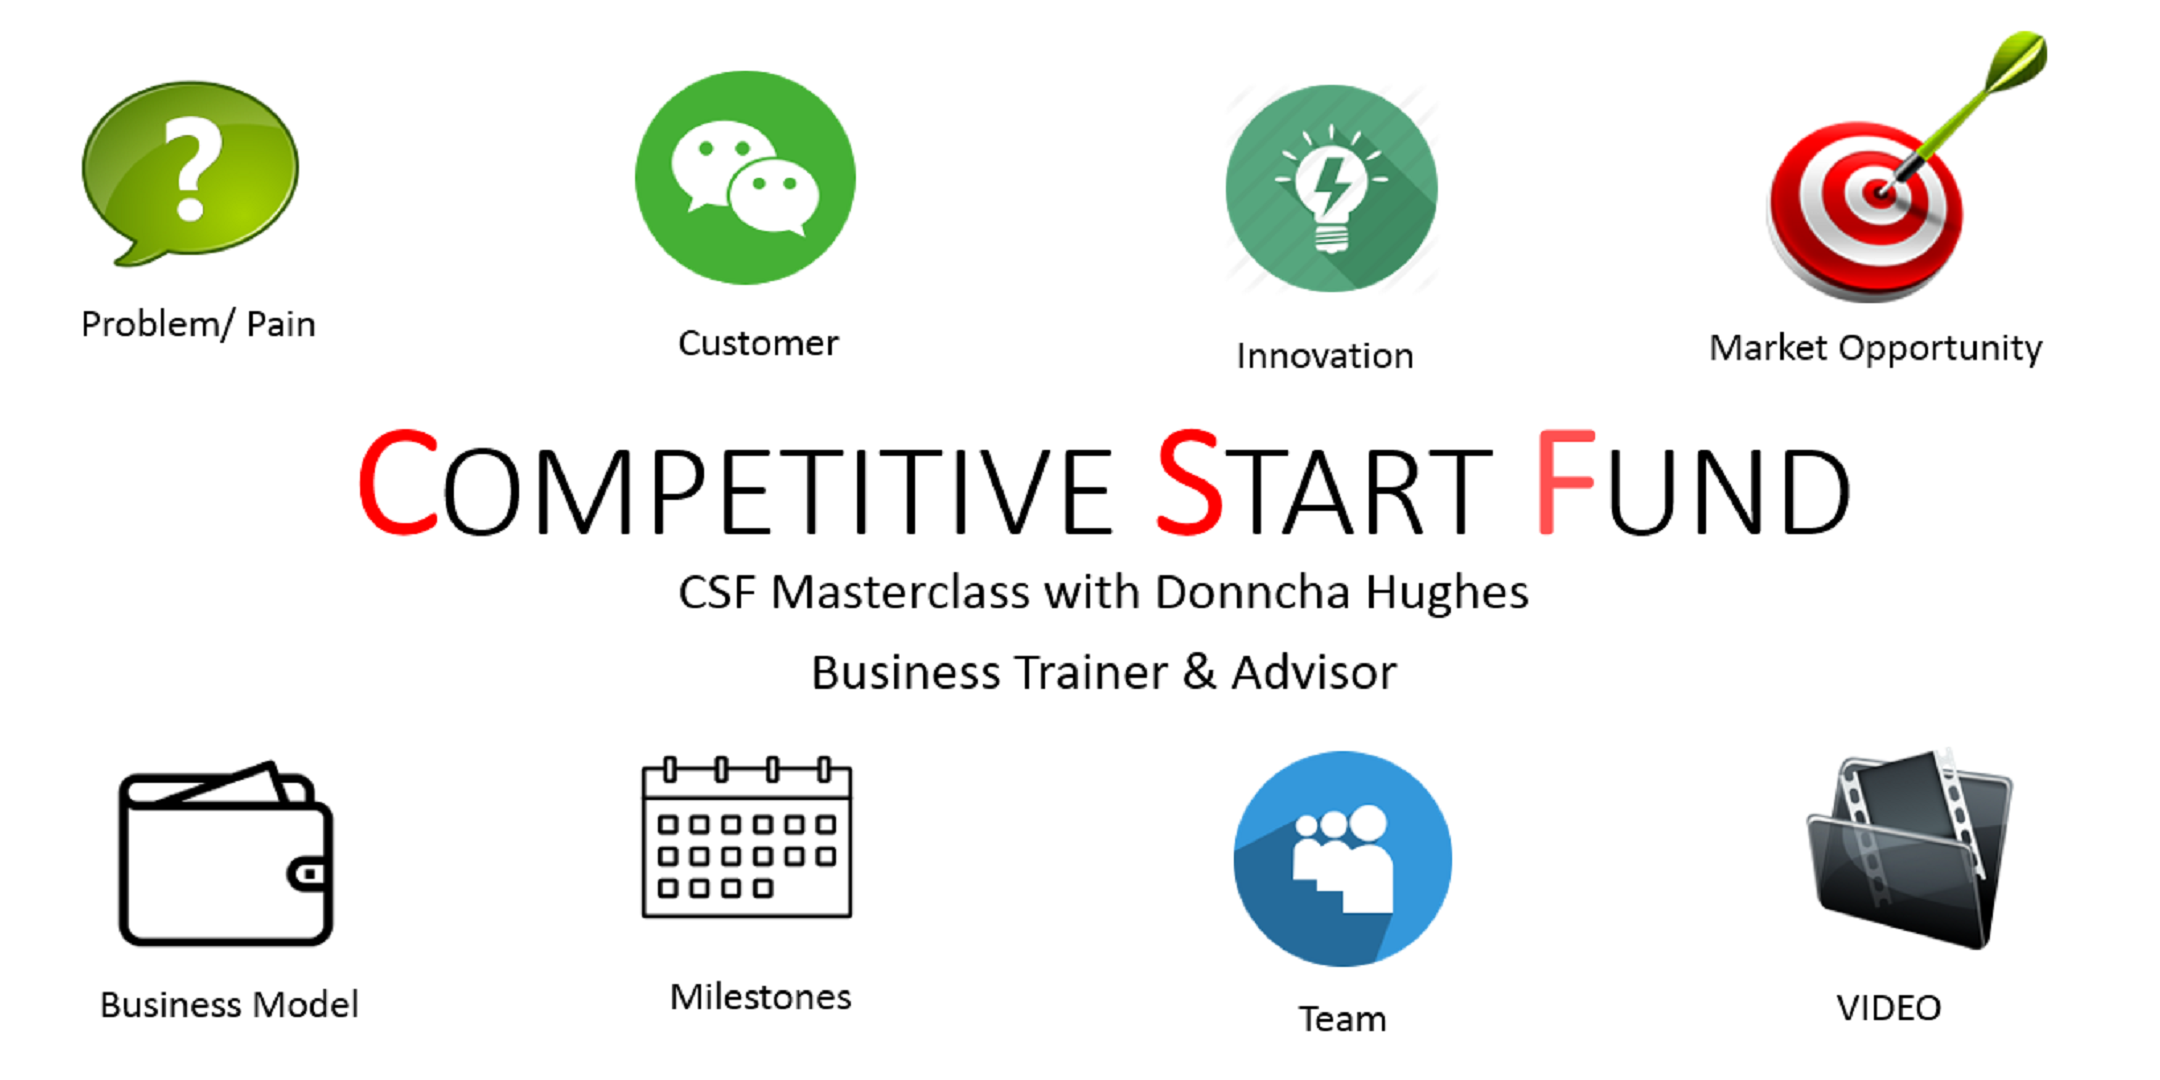 Competitive Start Fund Masterclass